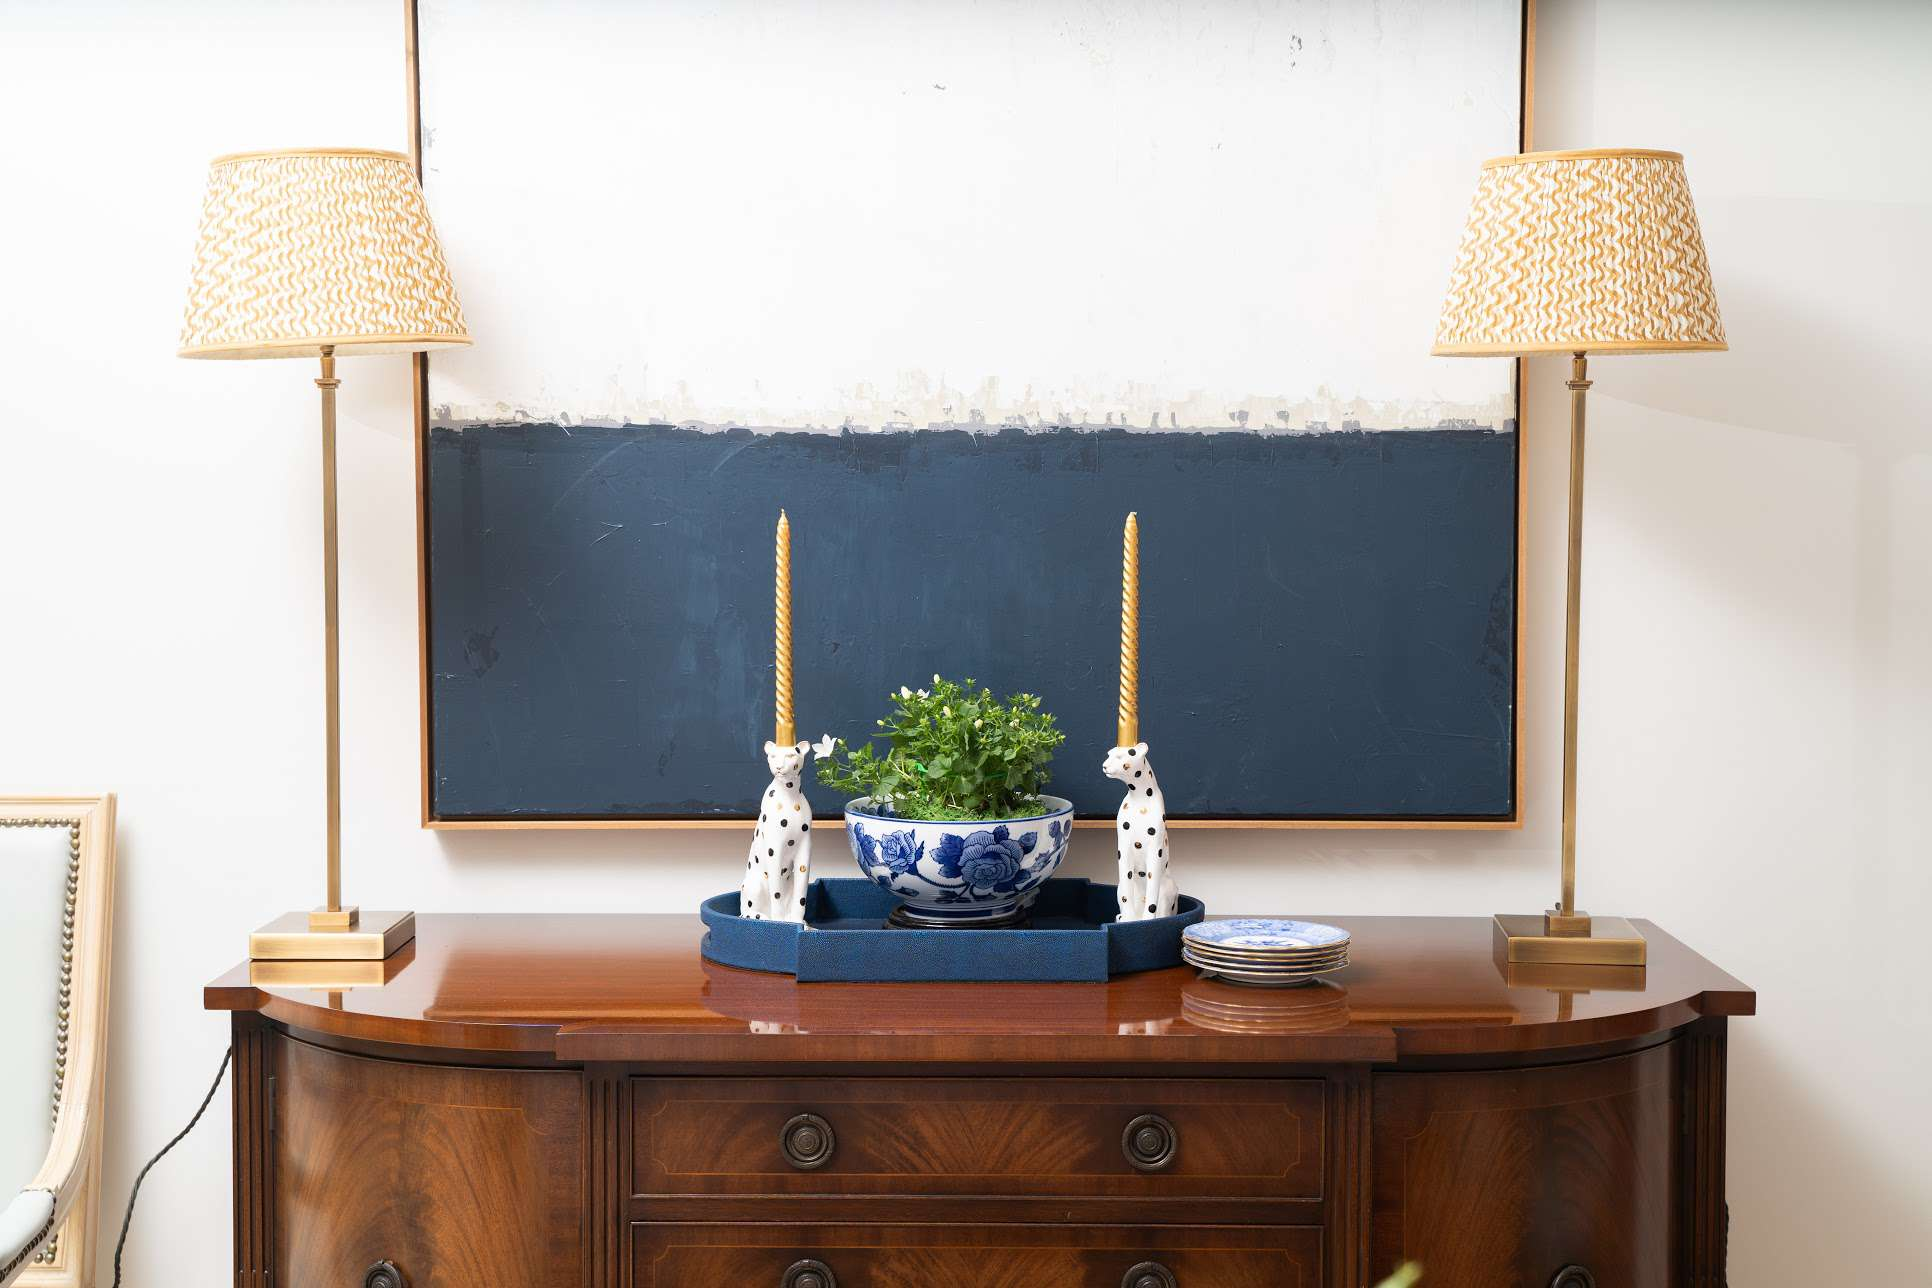 wooden sideboard with blue and white ceramics and patterned lamps on top